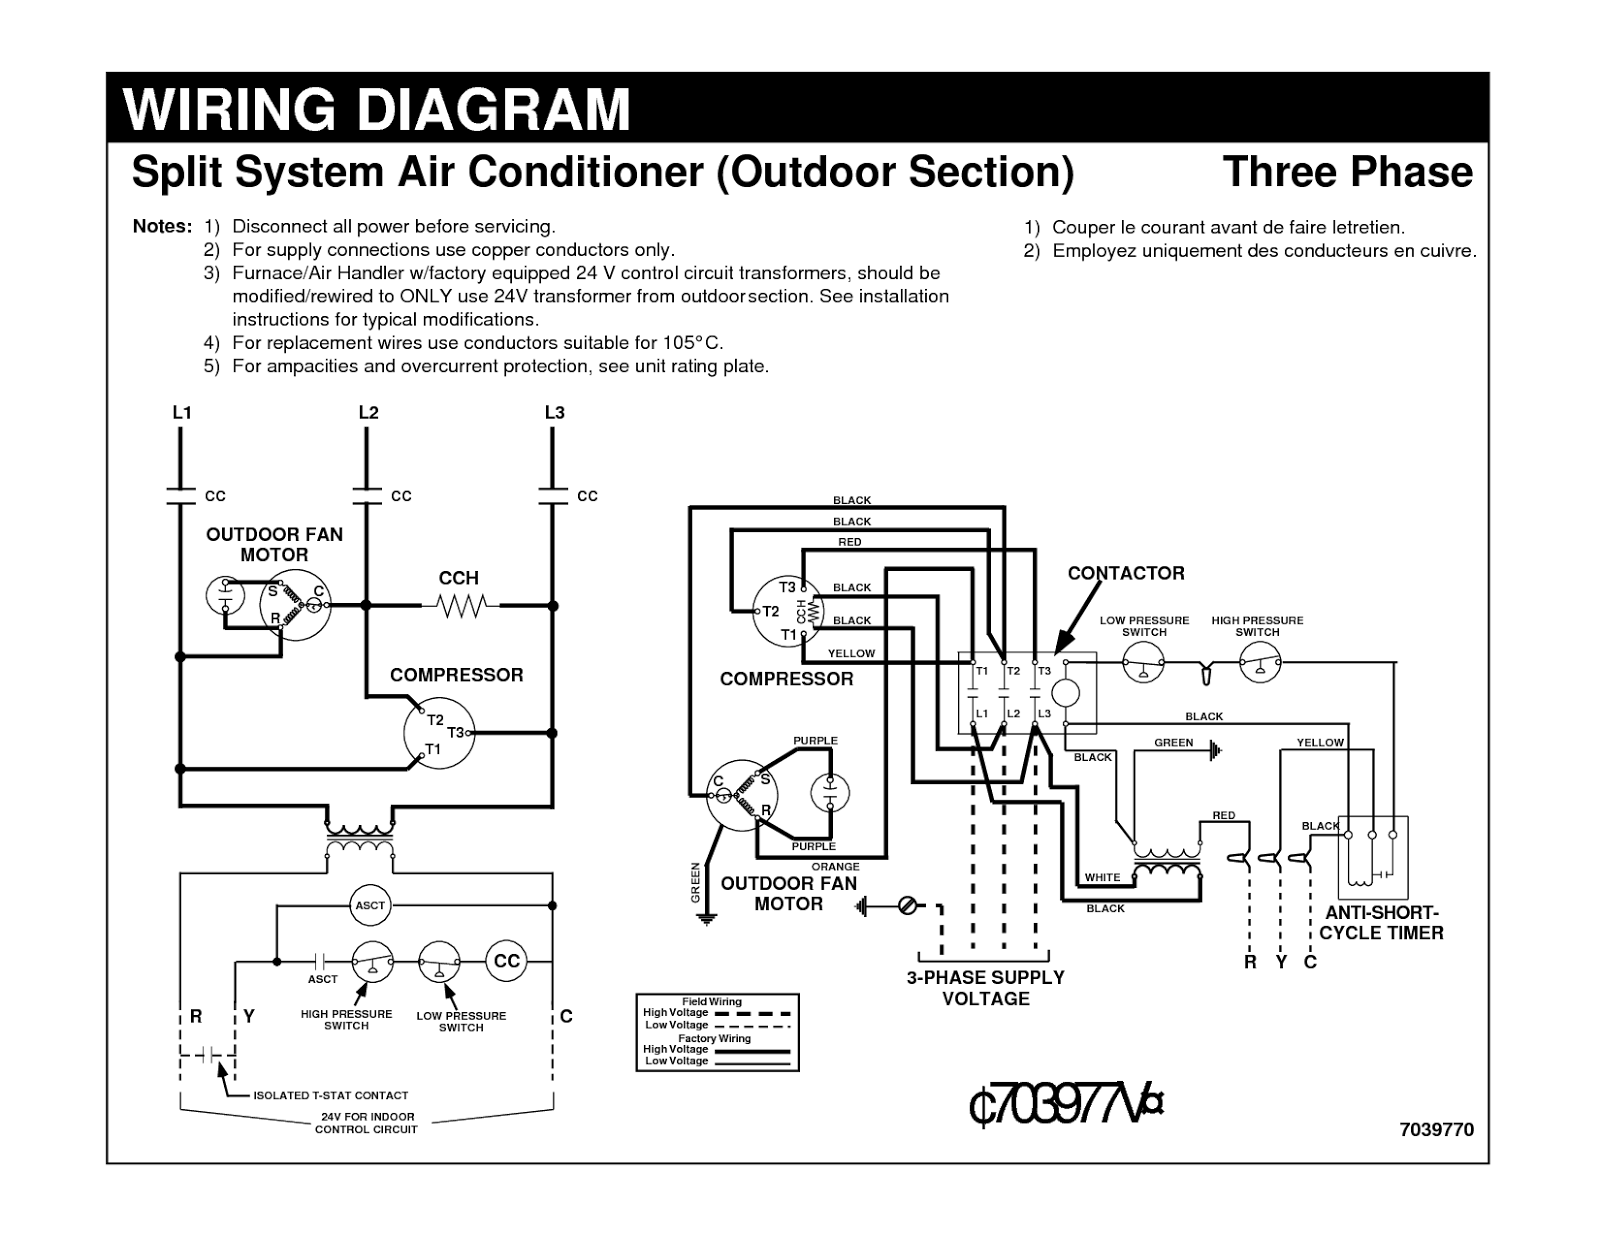 wiring+diagram+in+the+user+manual electrical wiring diagrams for air conditioning systems part one electrical wiring diagrams at gsmportal.co